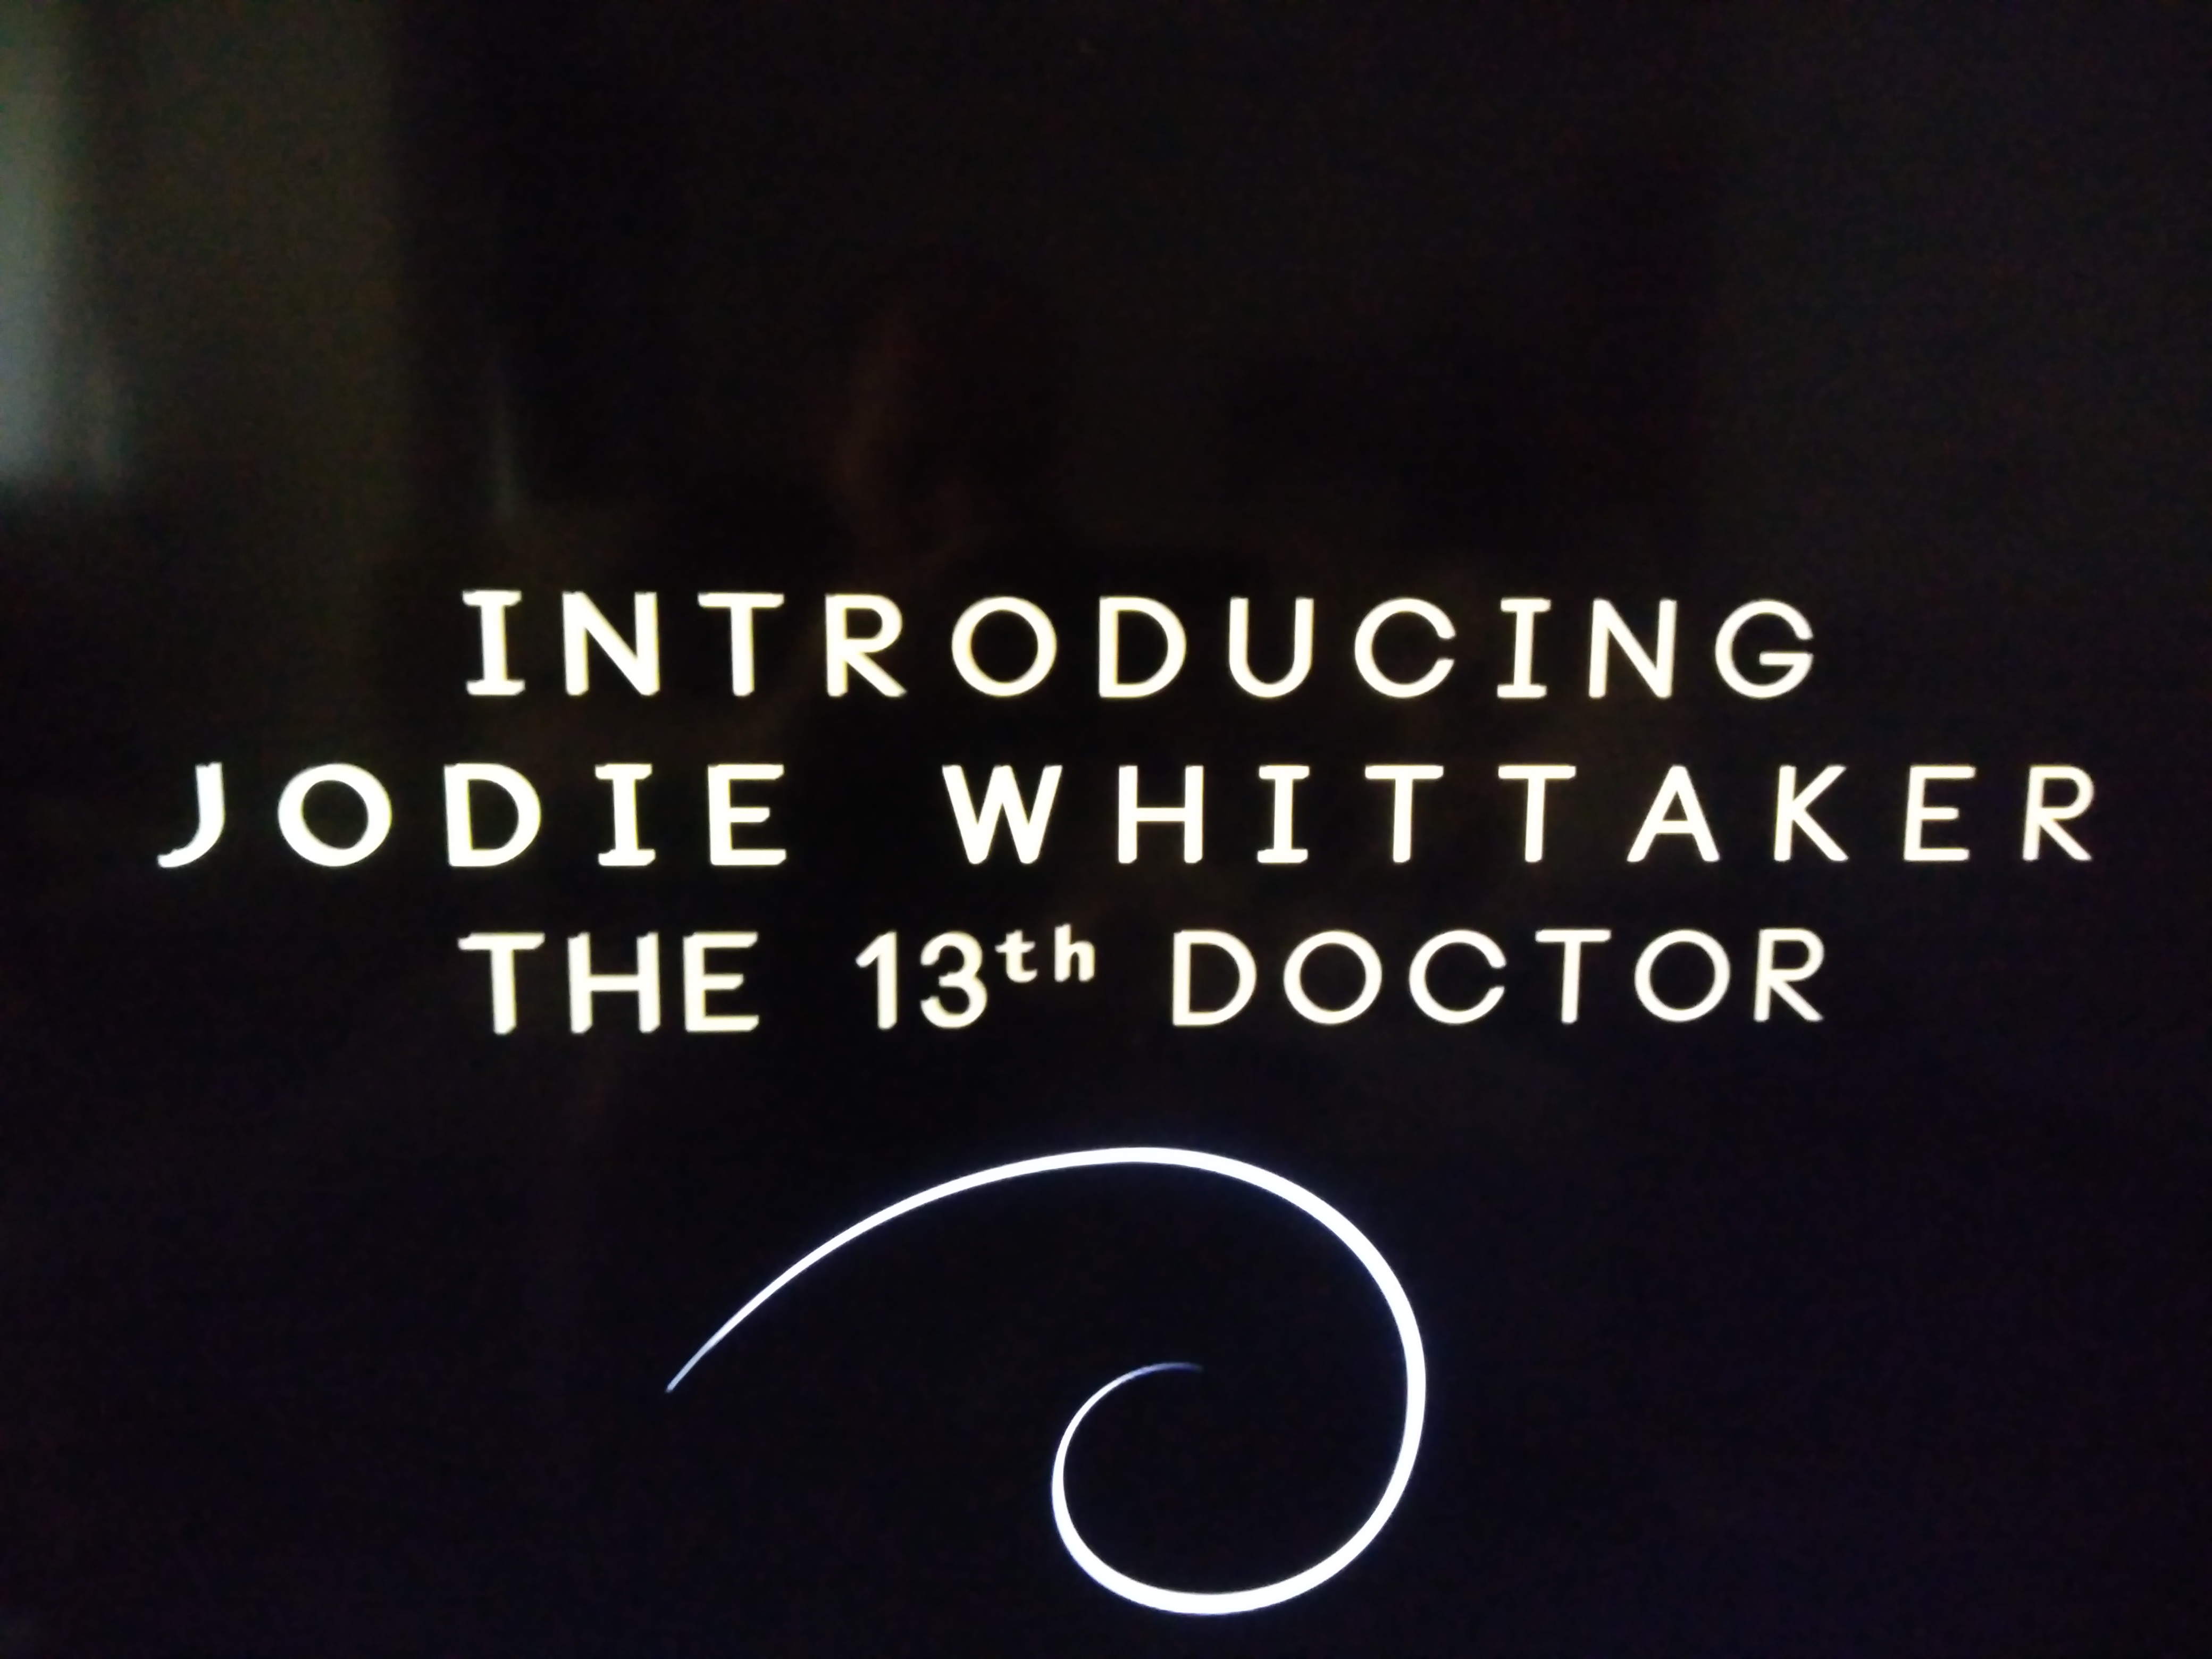 Doctor Who Jodie 13 Whittaker caption